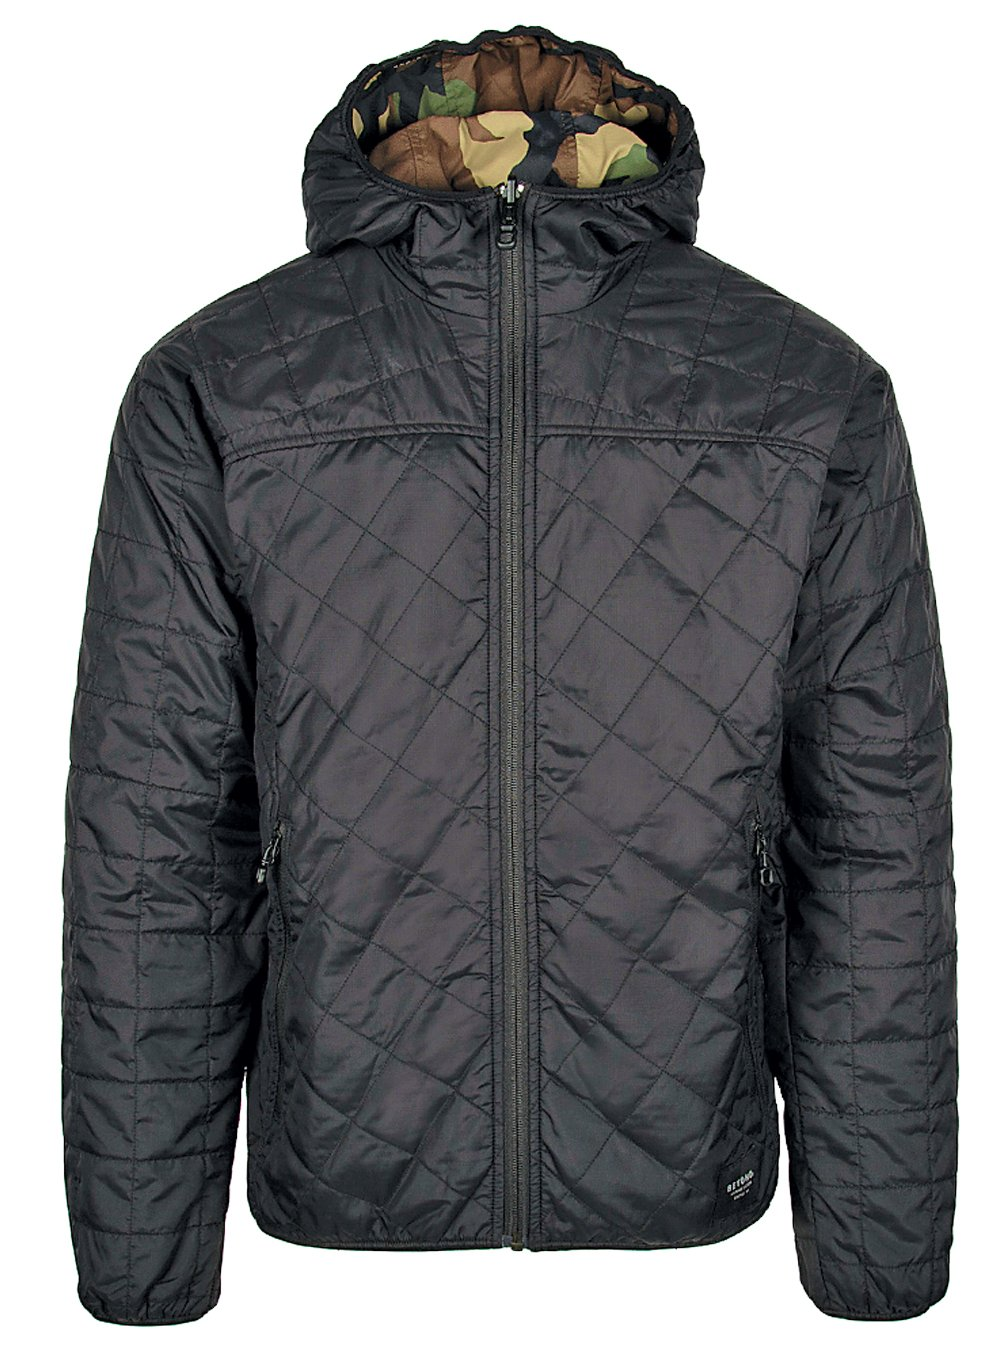 Beyond Clothing Prima Lochi Jacket for outdoor exploration